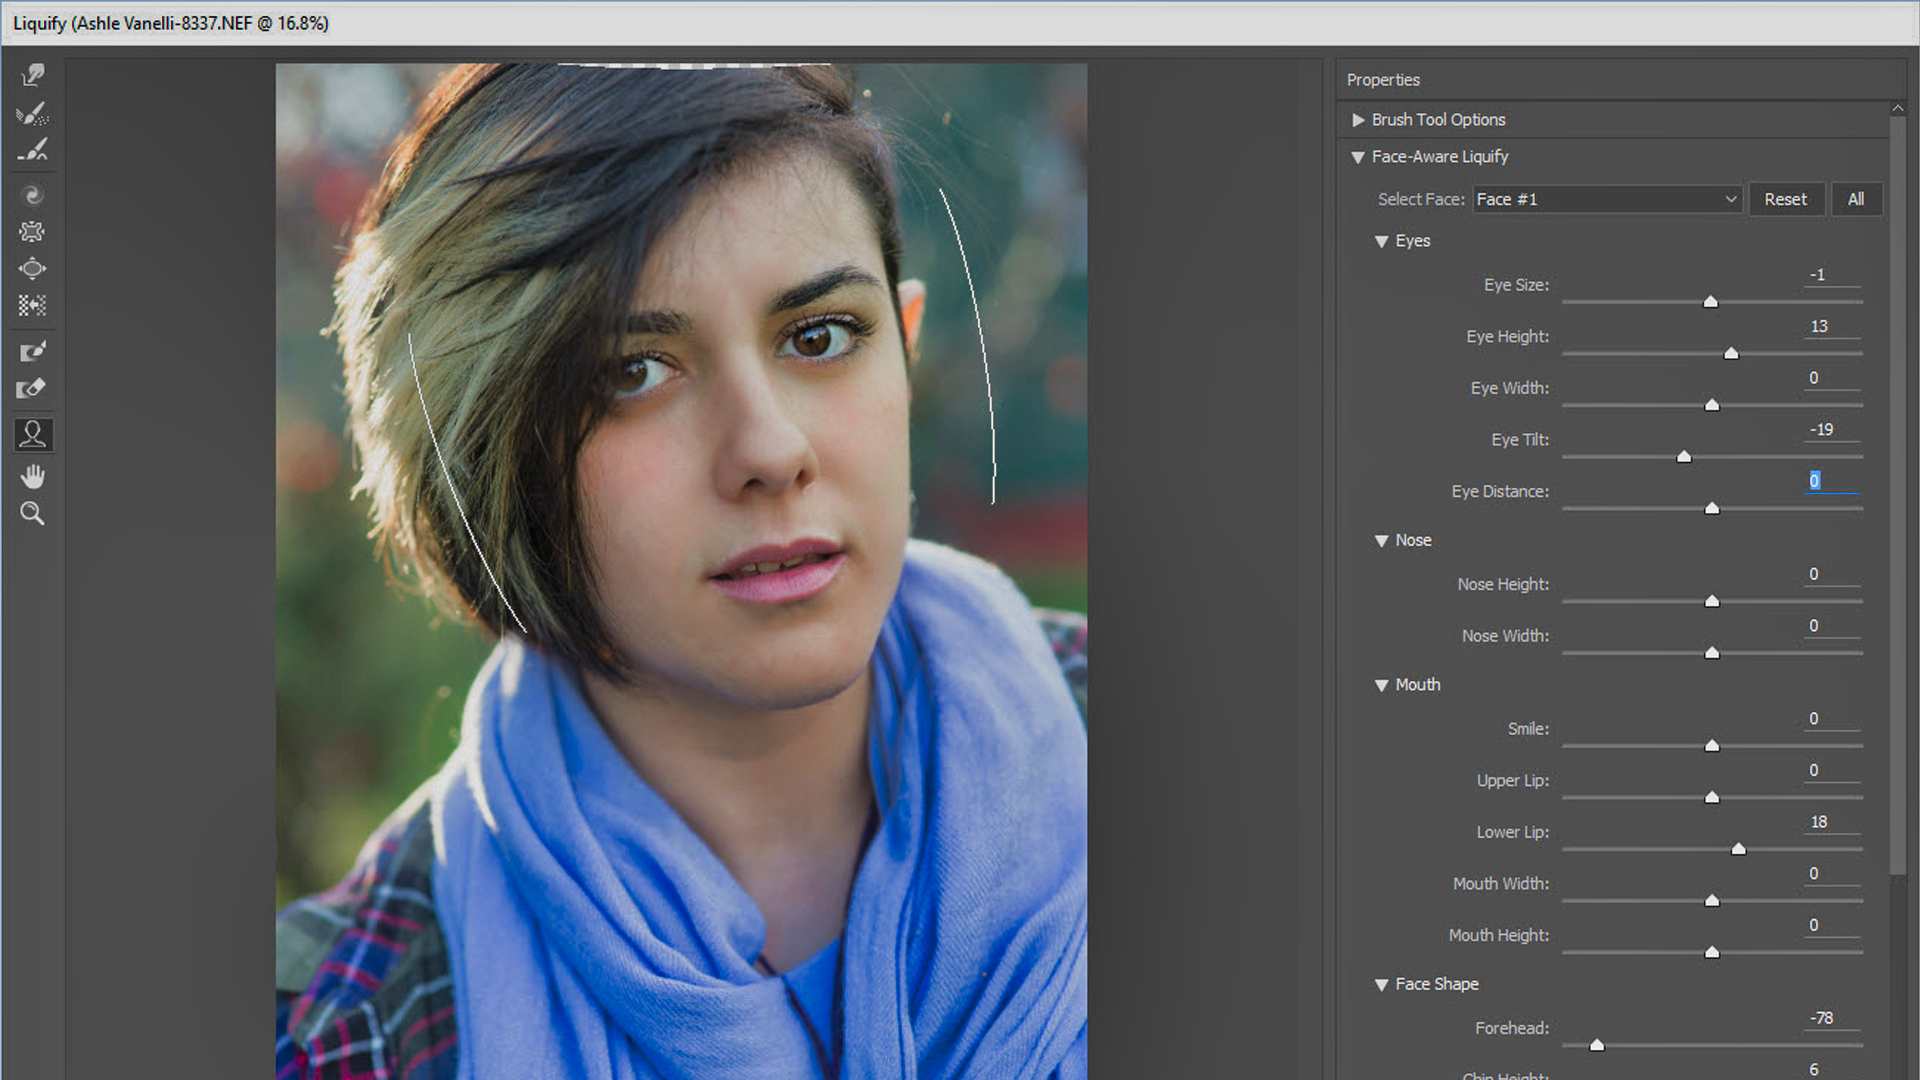 Quick Tip: Use Photoshop's Face-Aware Liquify to quickly